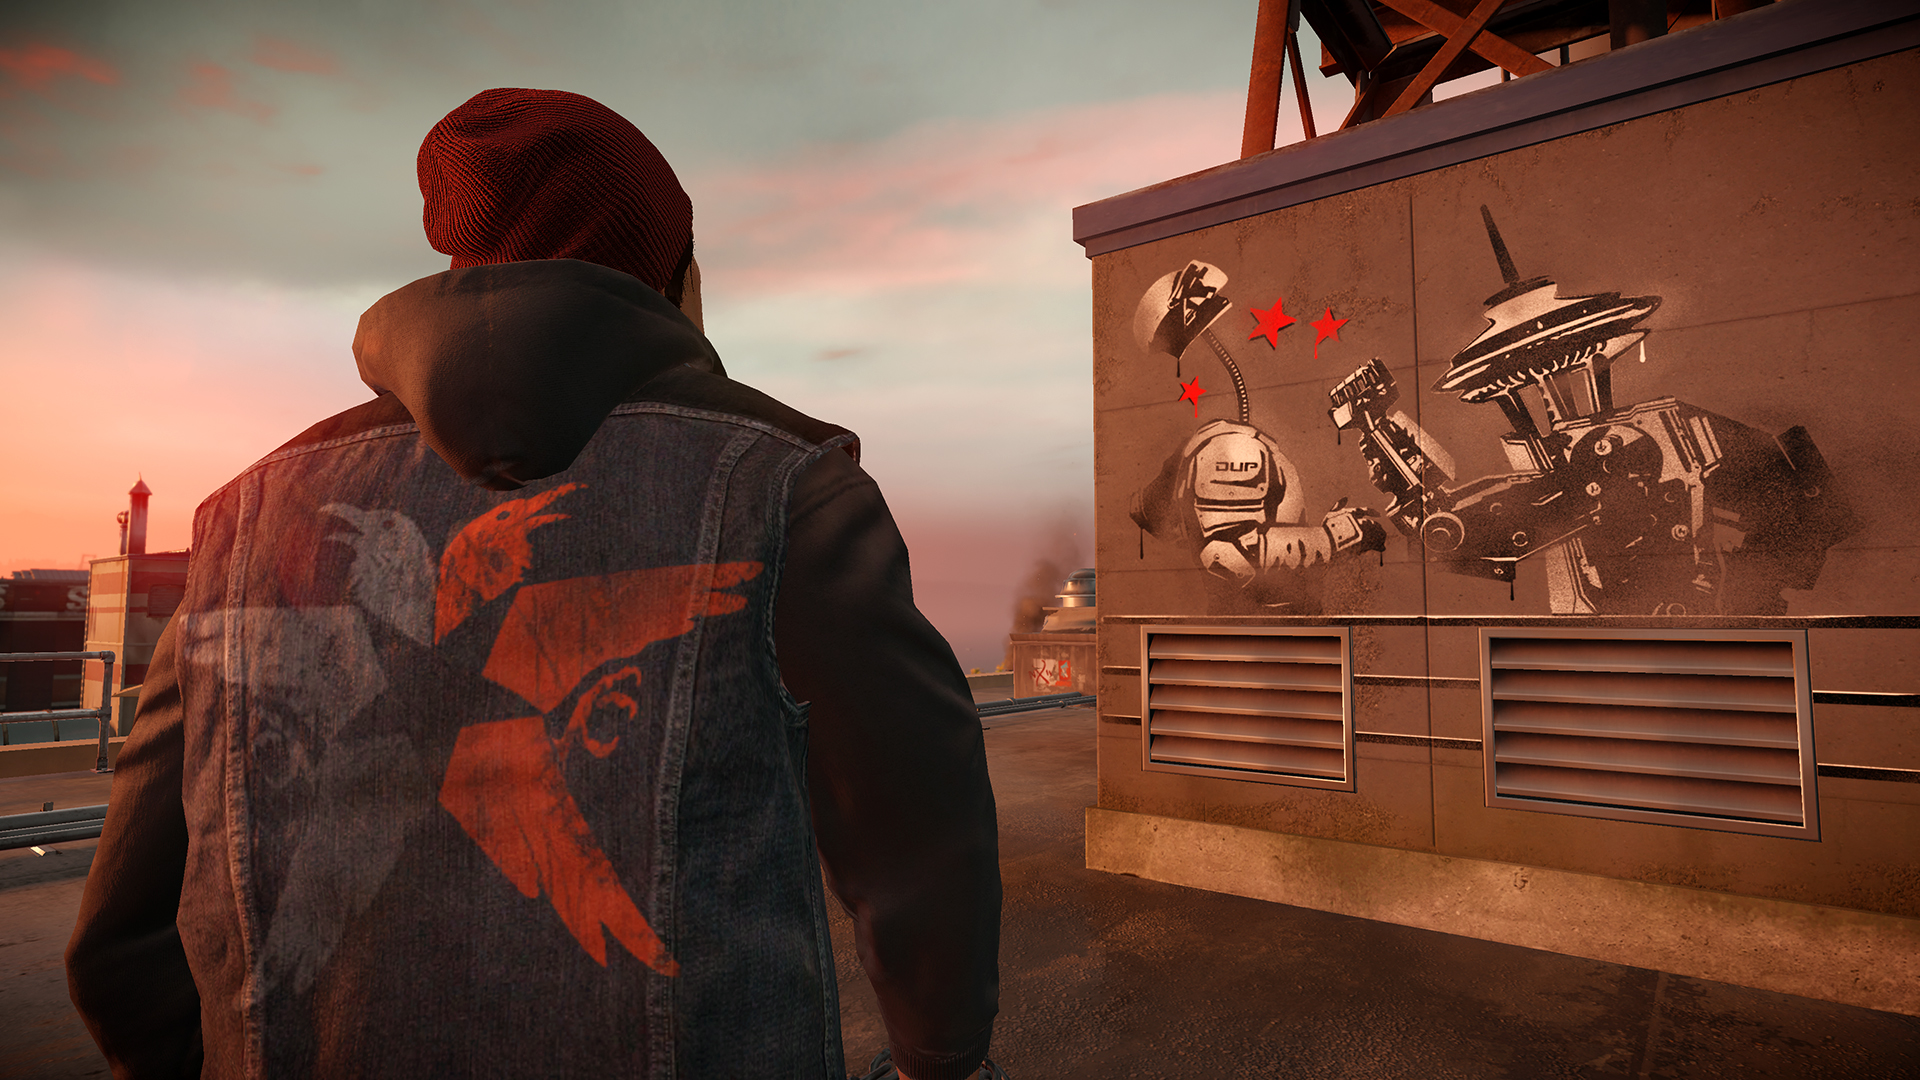 1395326474-infamous-second-son-grafitti-2